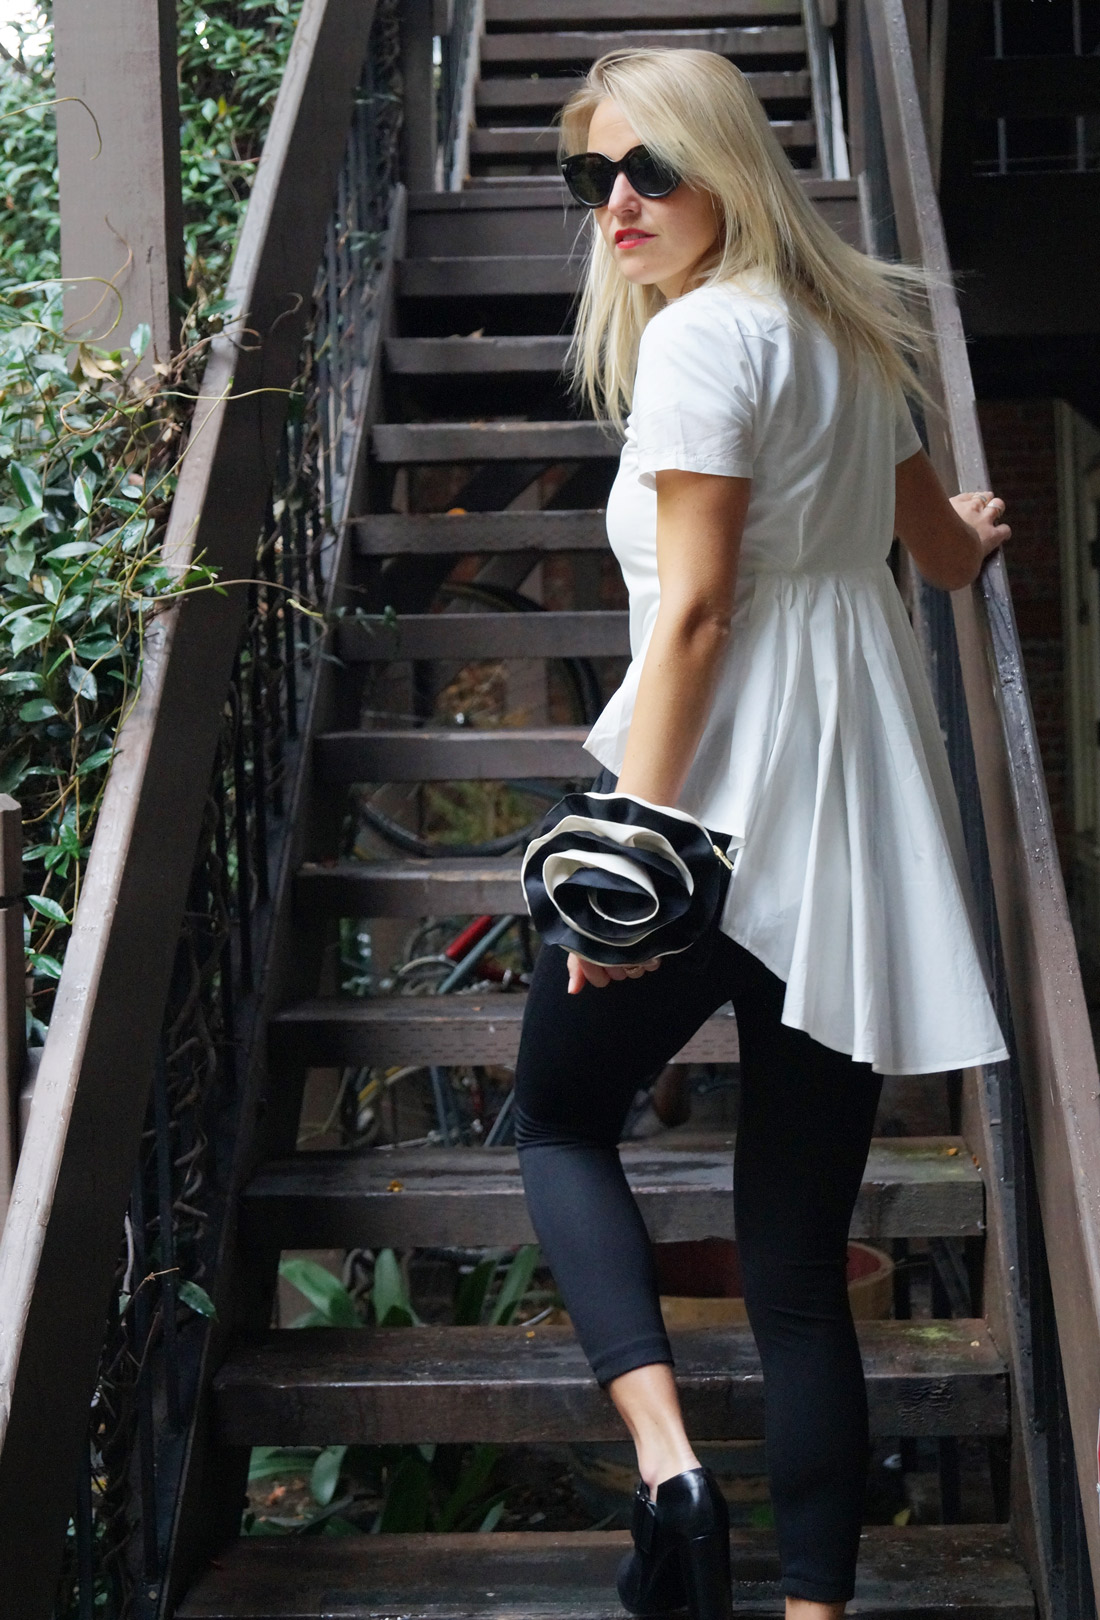 bag-at-you-fashion-blog-black-and-white-outfit-san-francisco-blogger